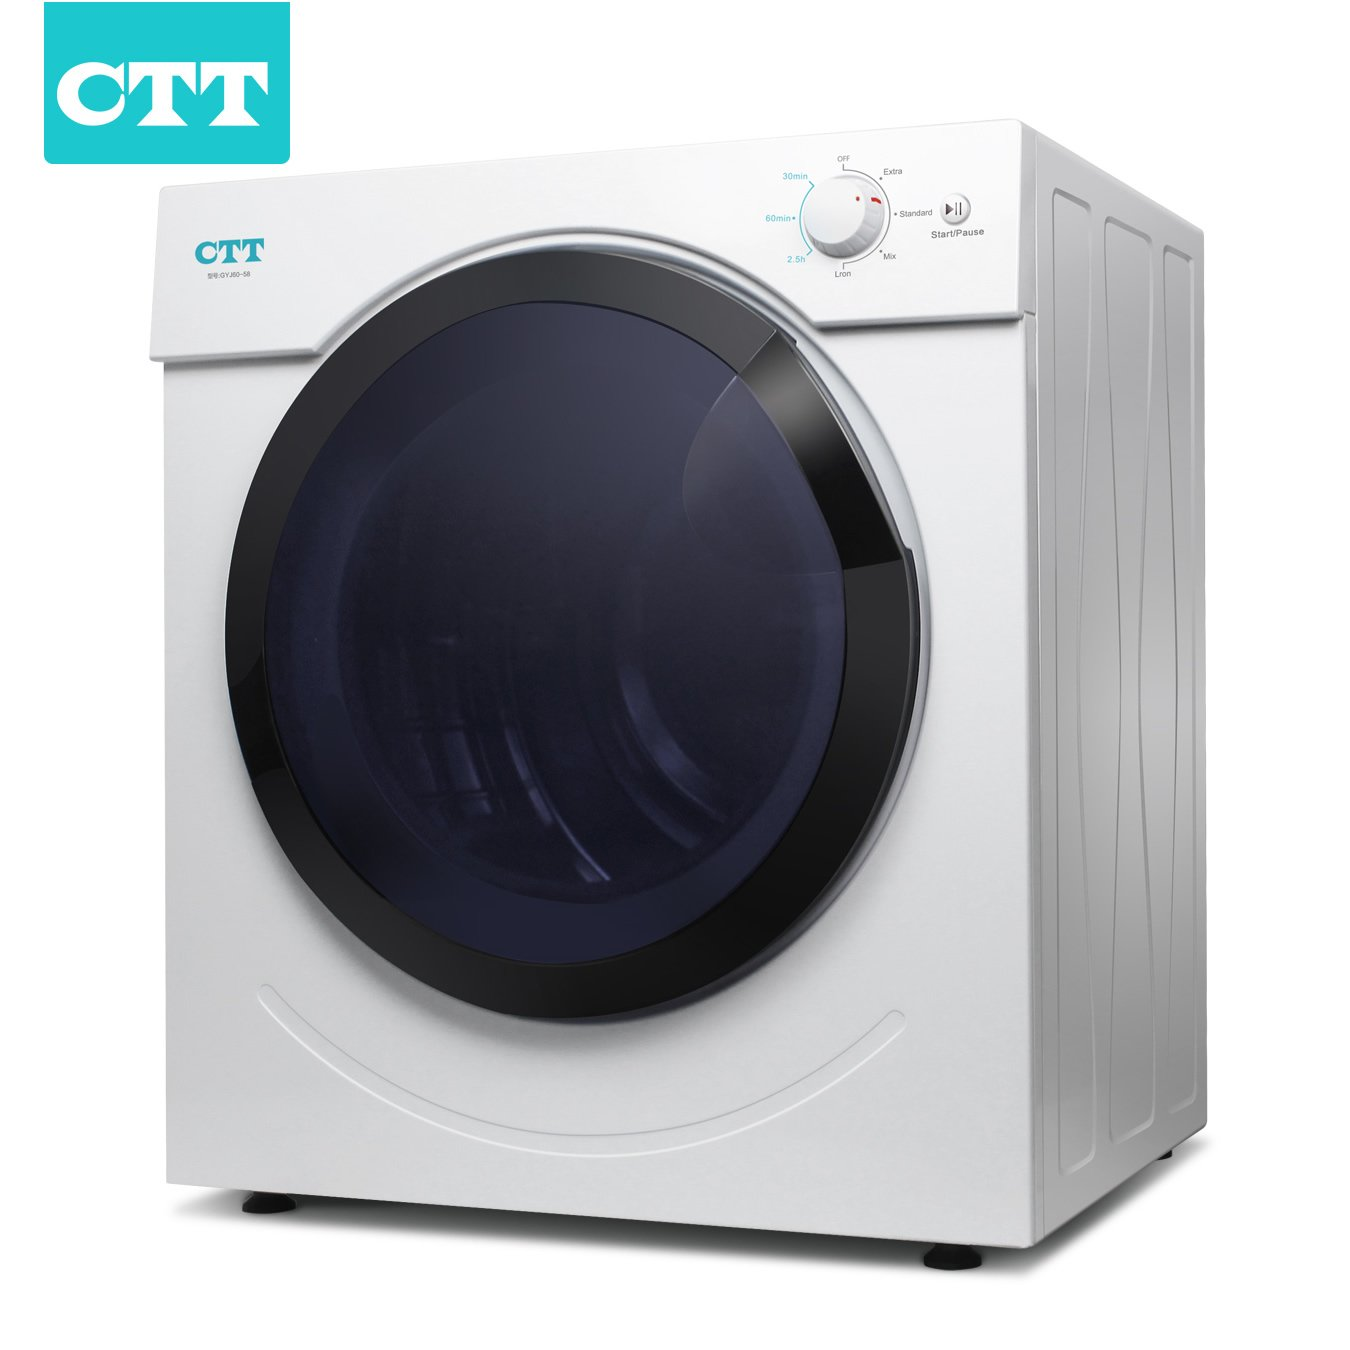 CTT Intelligent Compact Protable Tumble Clothes Dryer, Electric Tumble Vented Laundry Dryer, 12.5lb. Capacity/3.25 Cu.Ft. w/ Timer Control, Intelligent Drying Control Systerm, Humidity Tester